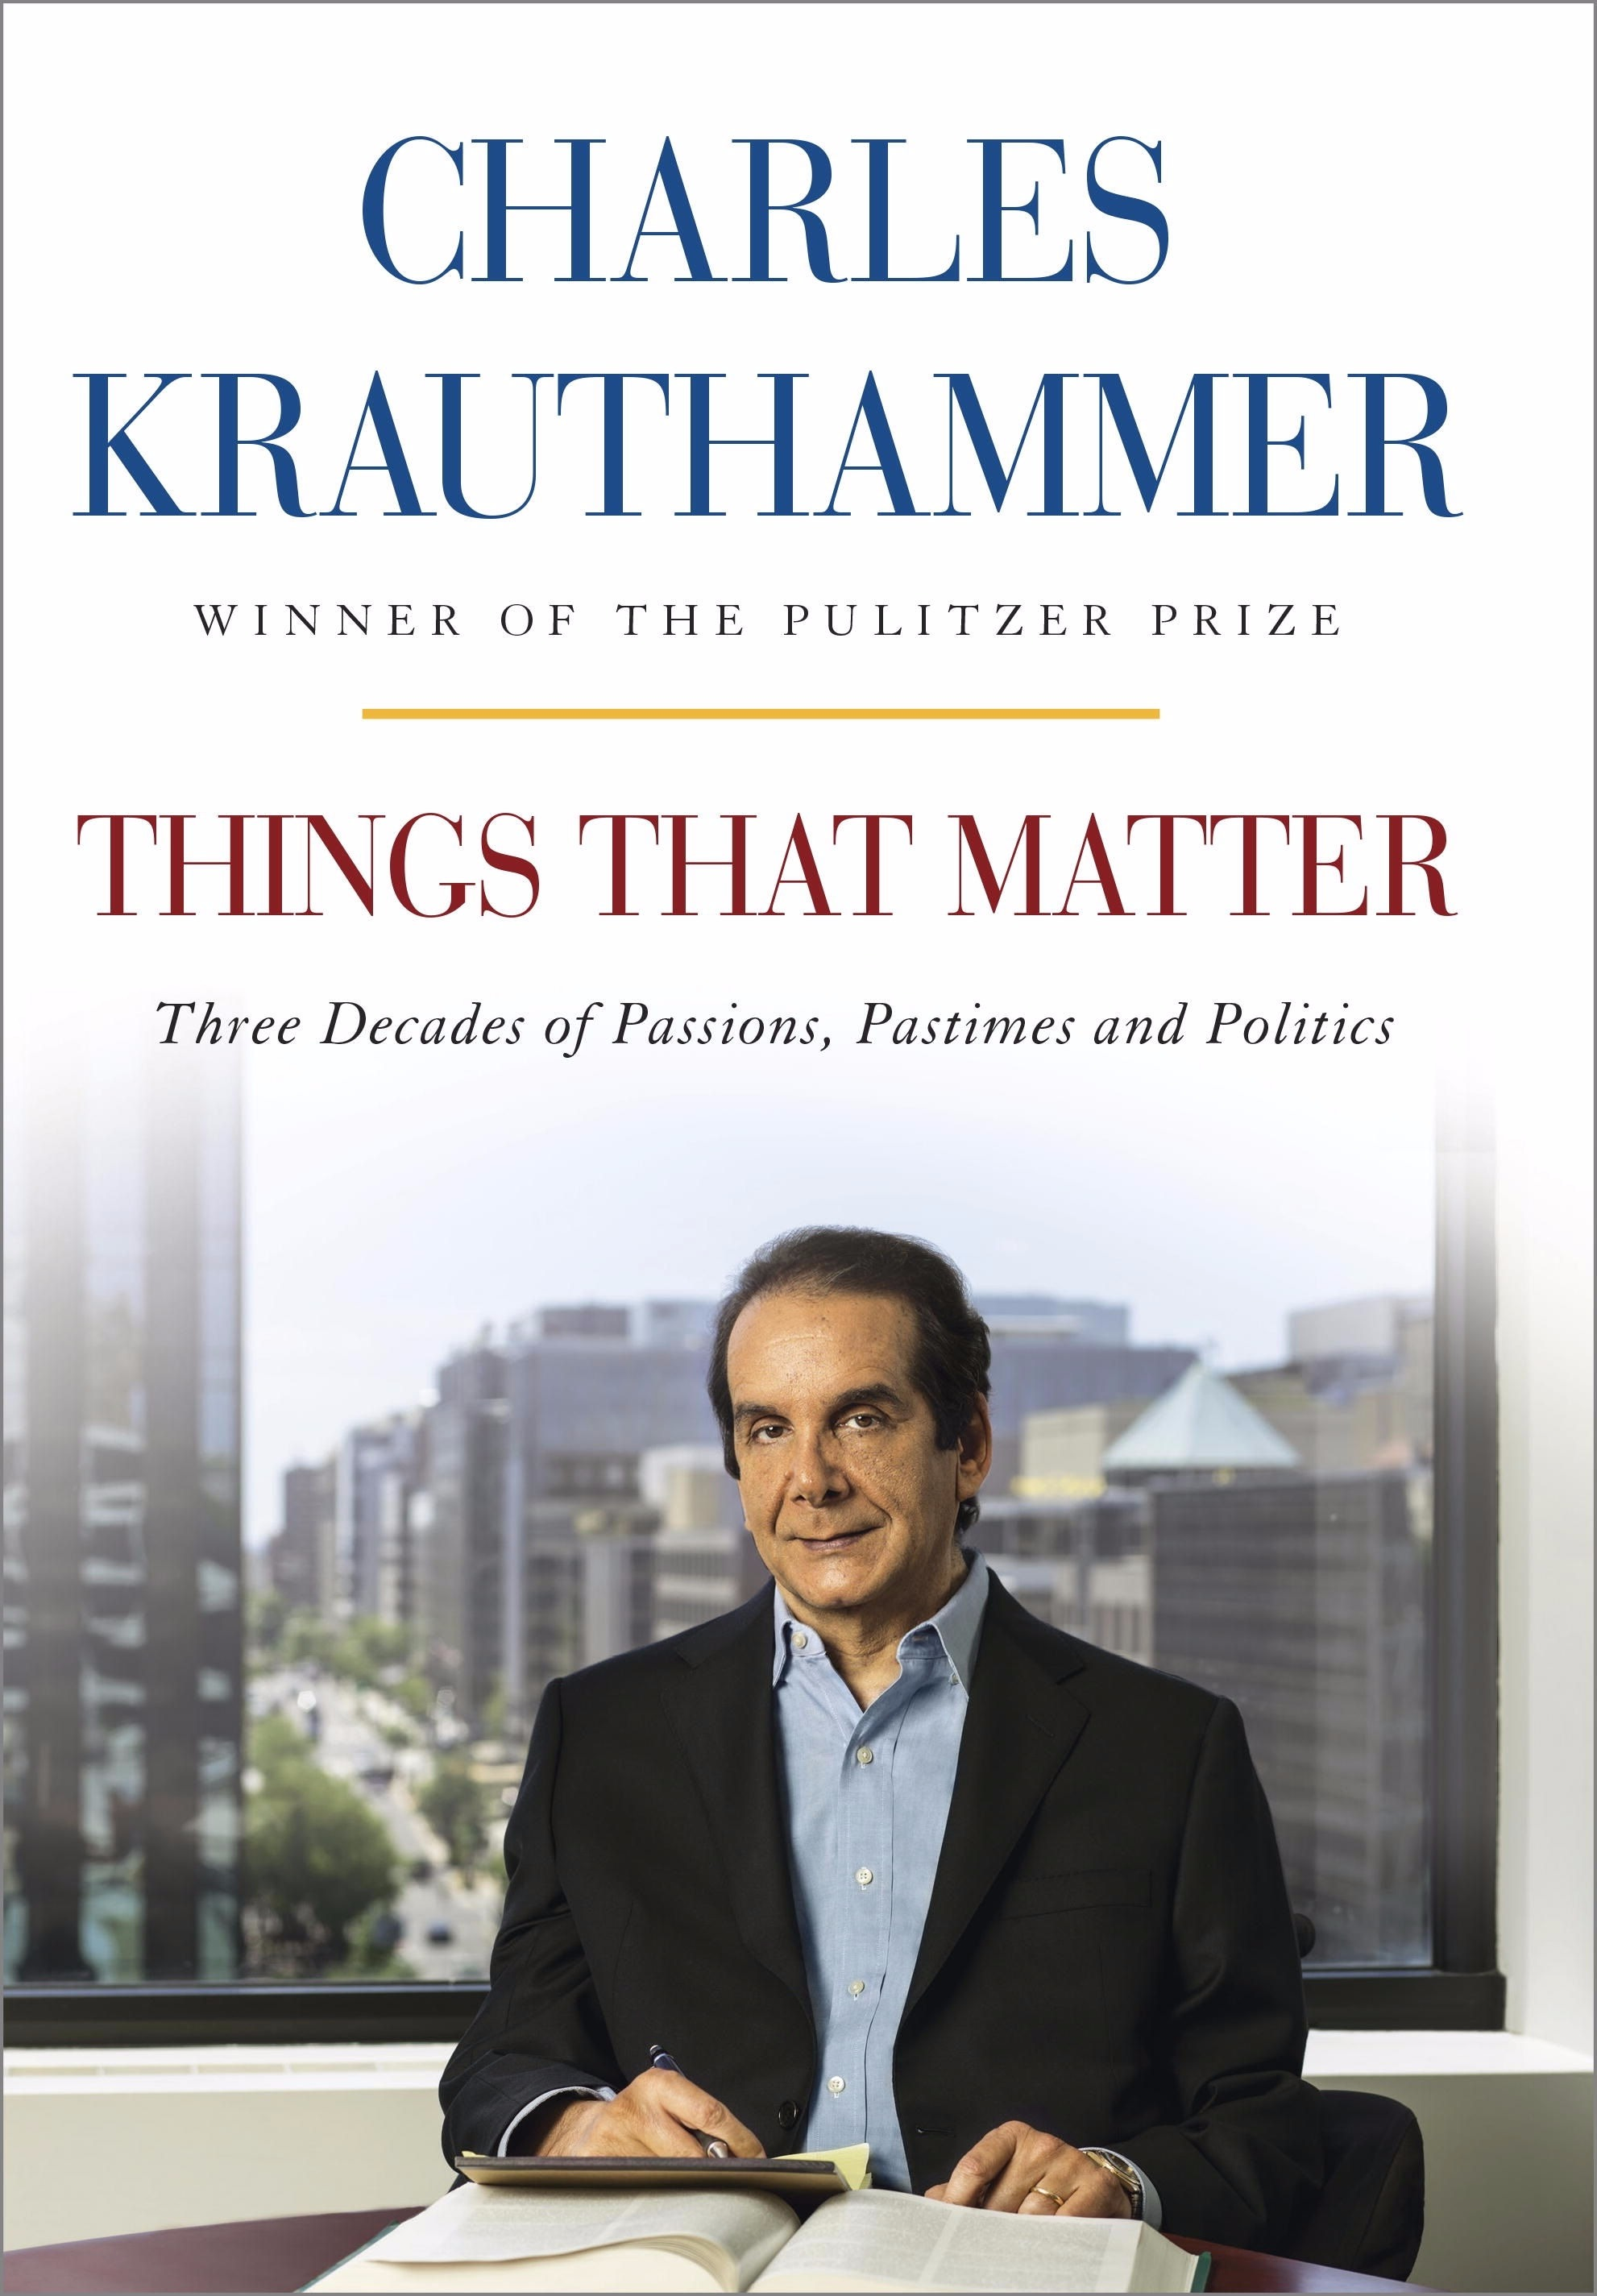 Charles Krauthammer's book Things That Matter: Three Decades of Passion, Pastimes and Politics.